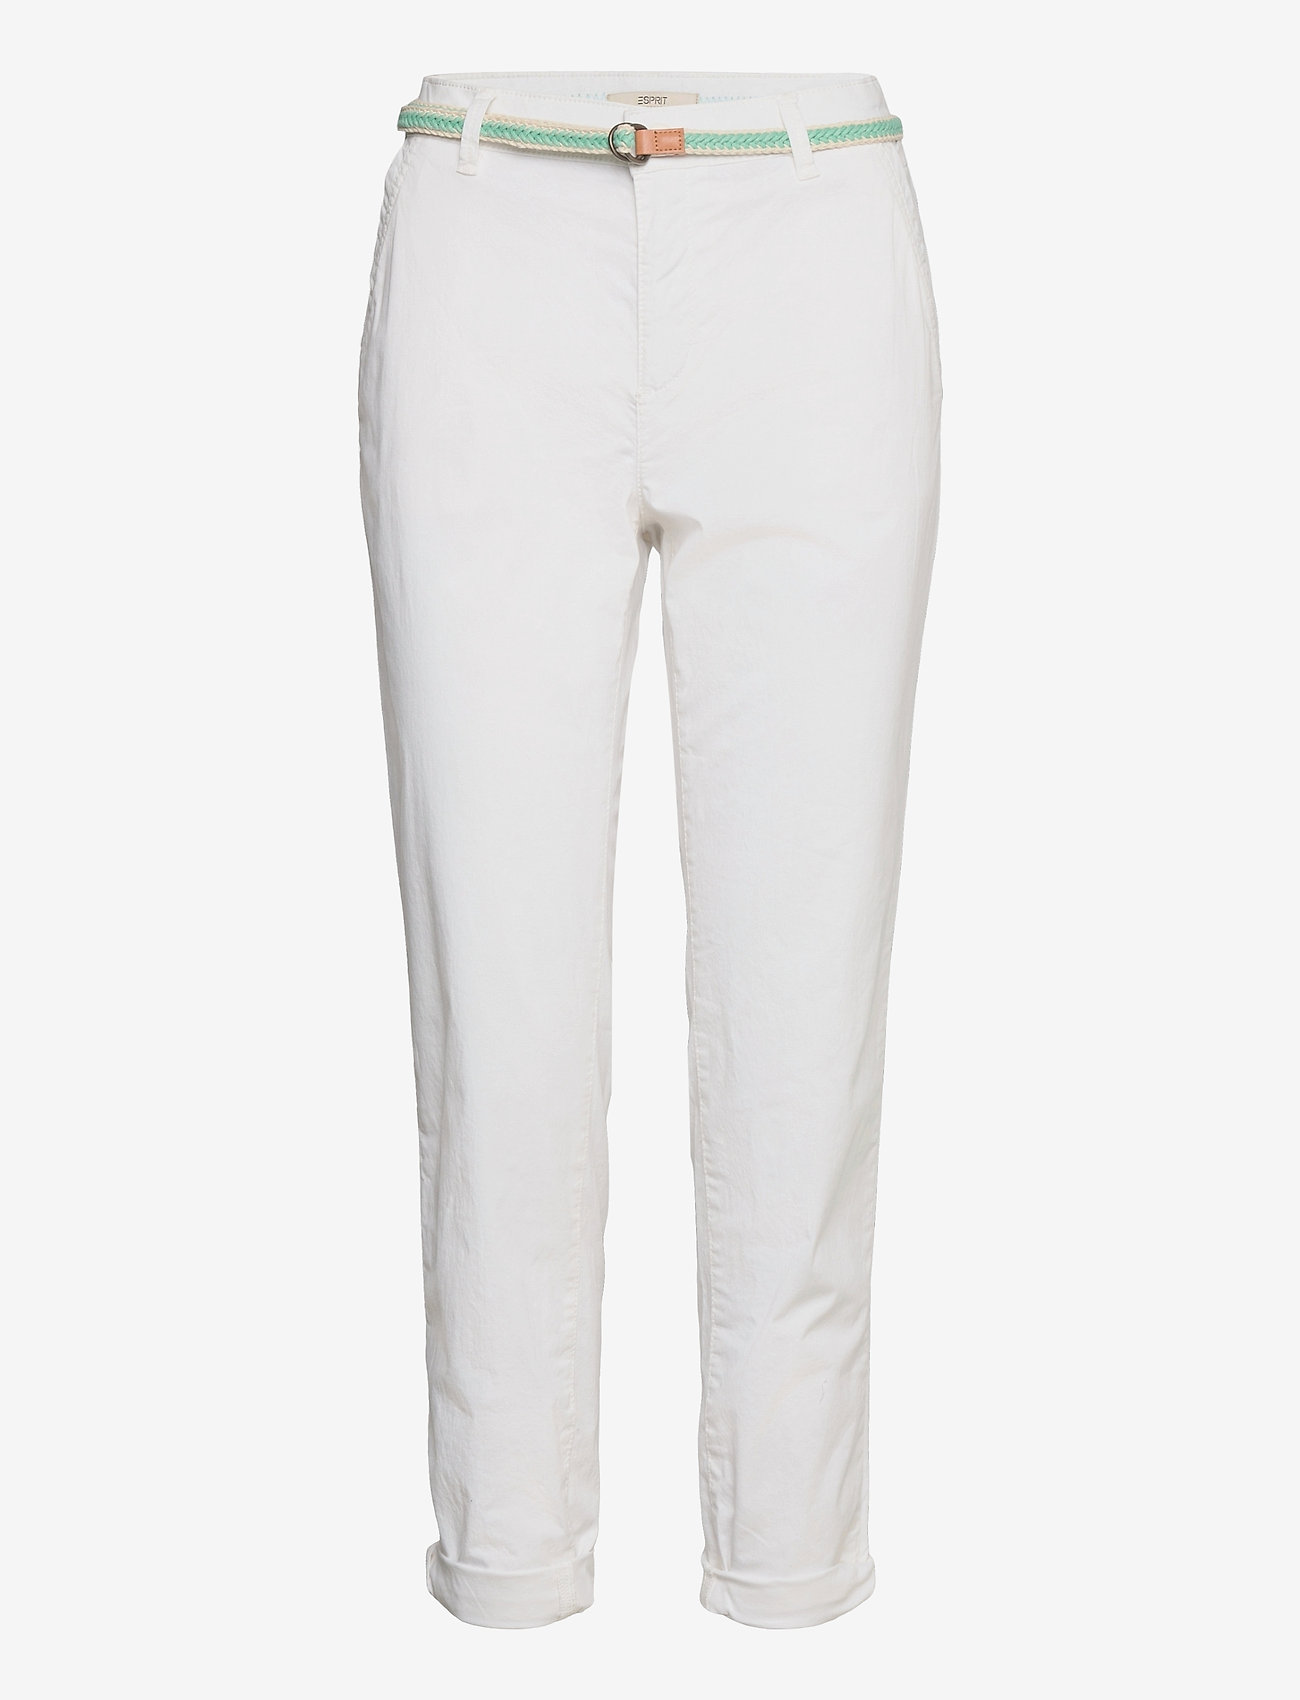 Esprit Casual - Pants woven - chinos - white - 0